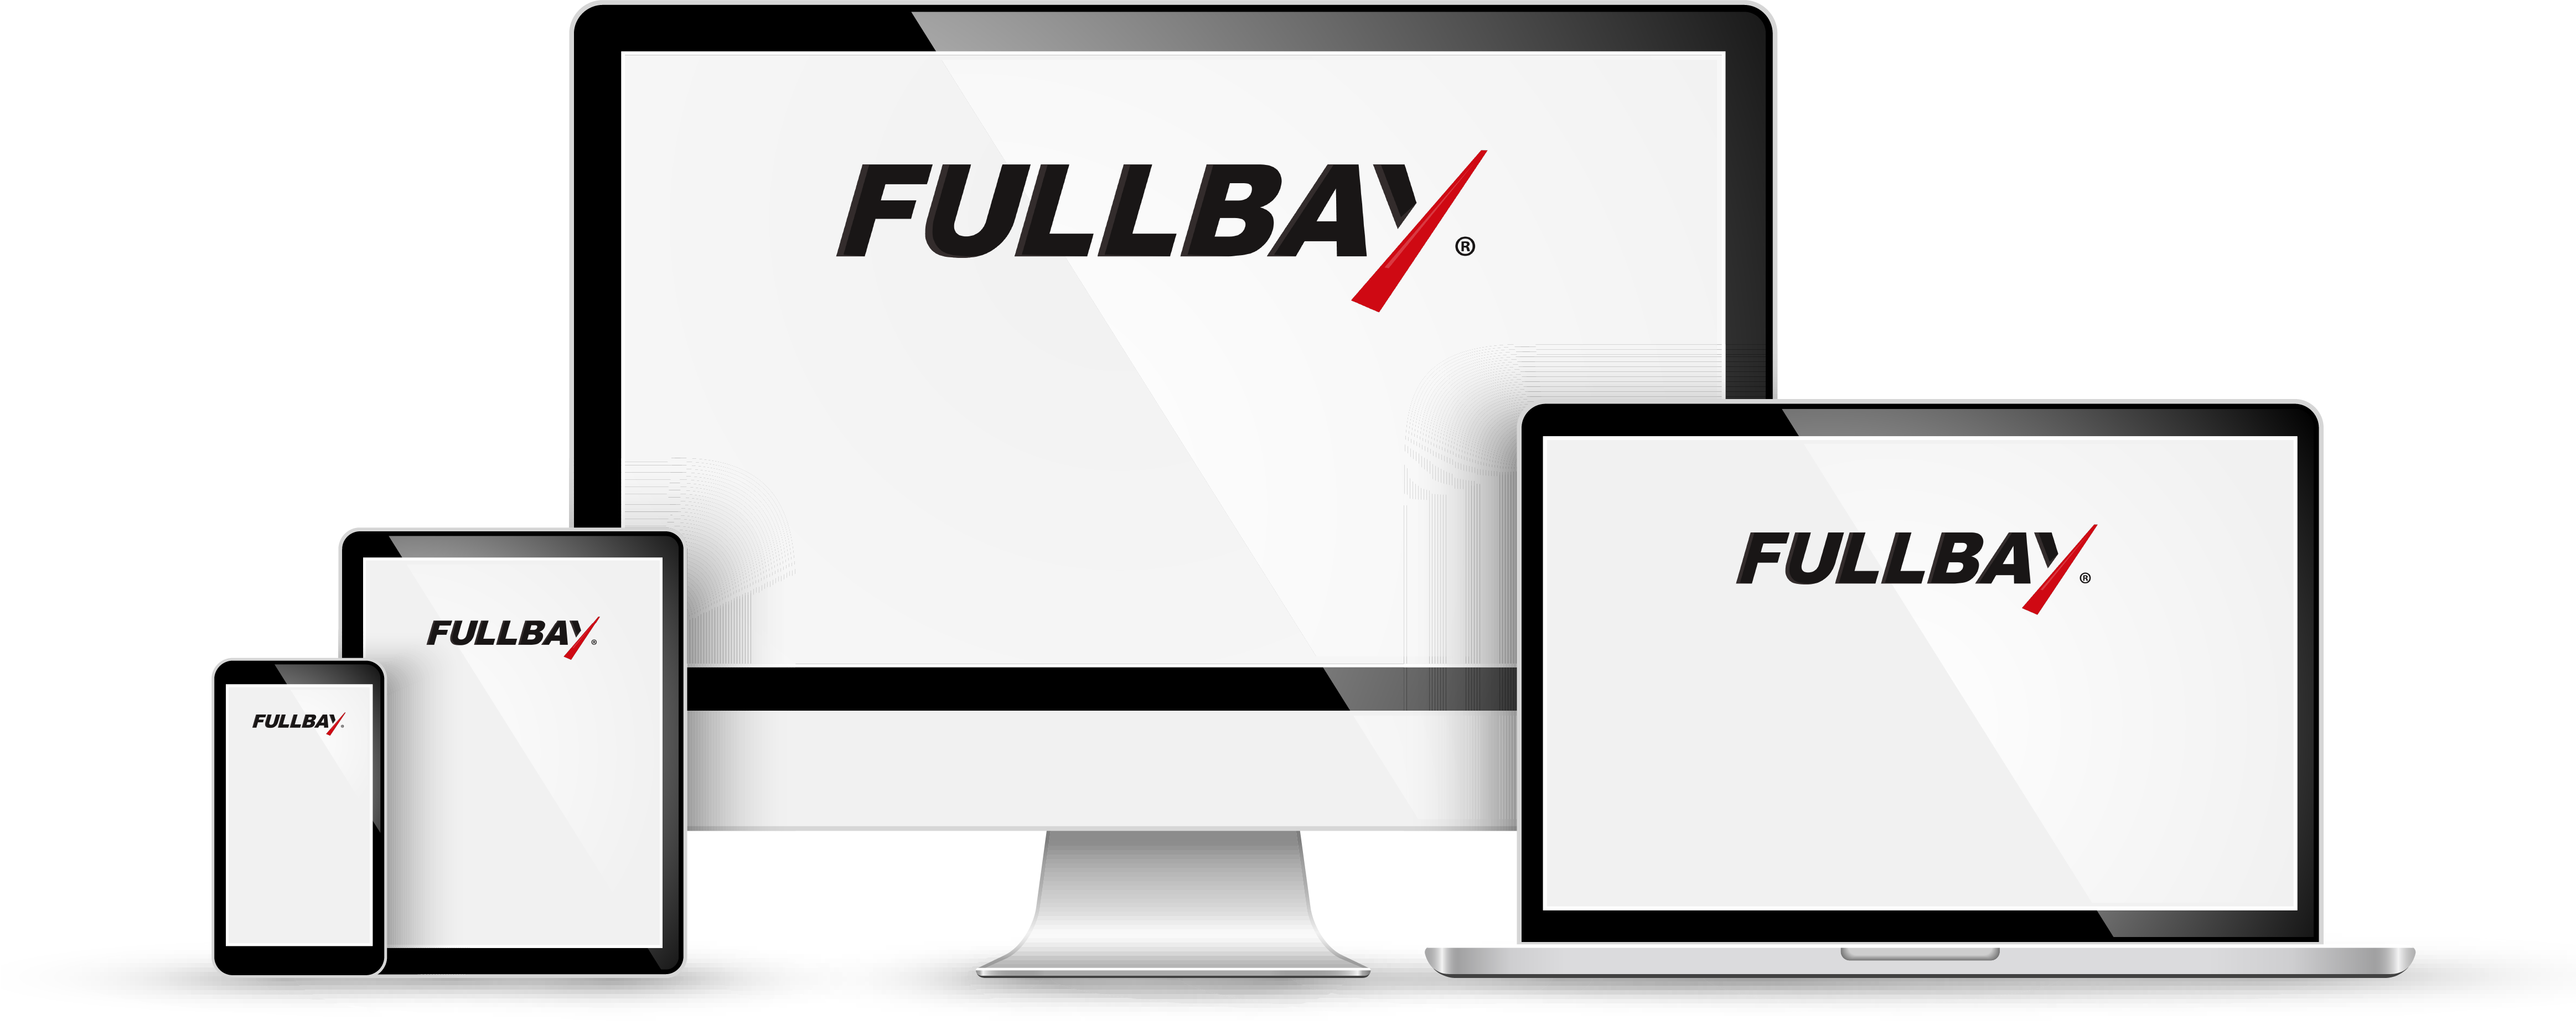 Hosted and deployed within the cloud, Fullbay is accessible on any internet-enabled device including mobile, tablet, desktop or laptop